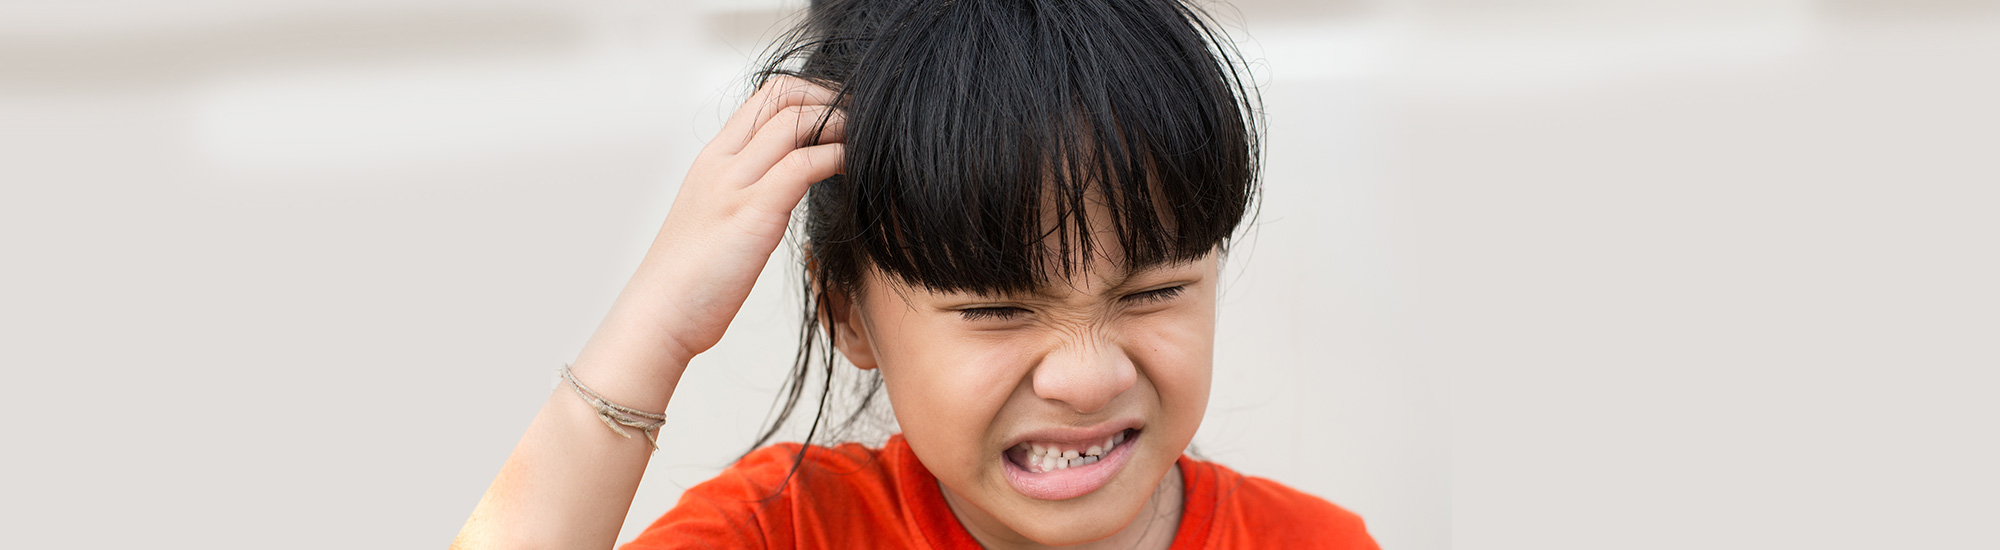 Ayurvedic treatment for Head lice References